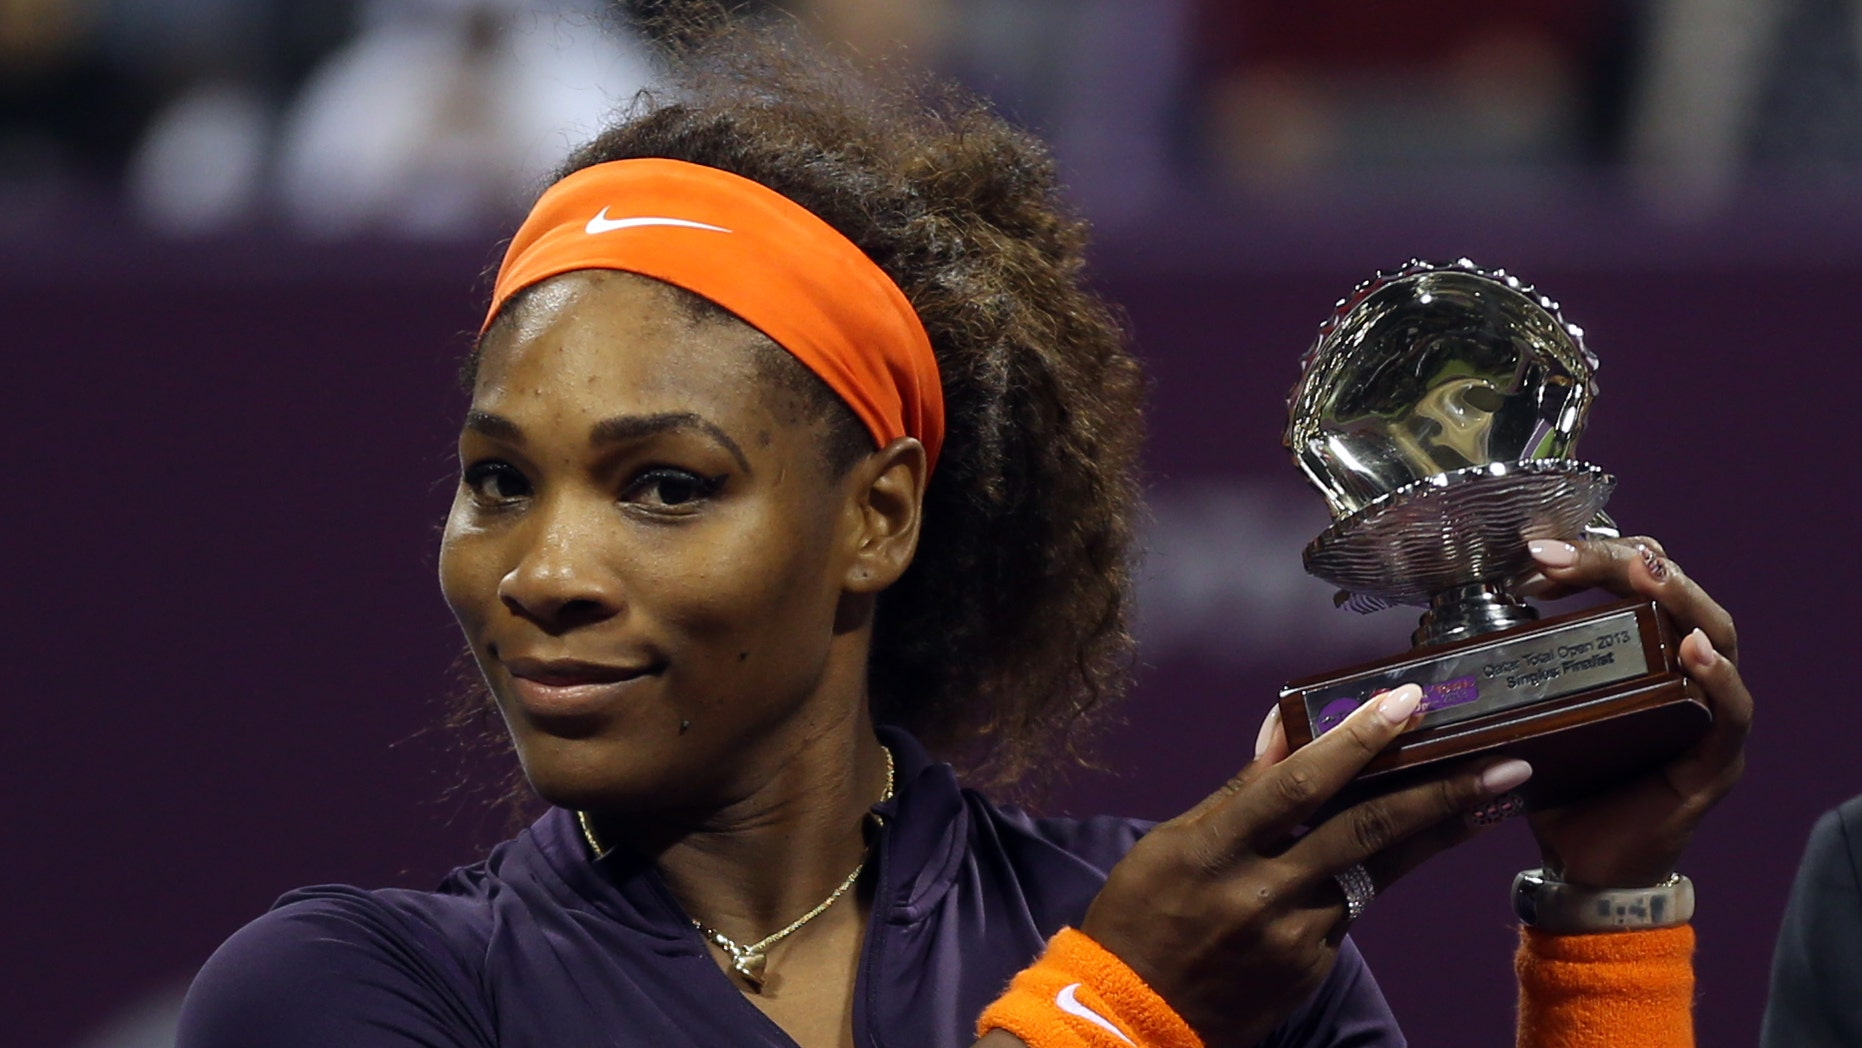 Serena Williams of the U.S.  poses with her trophy after losing to Belarus' Victoria Azarenka in their final match of the Qatar WTA Ladies Open tennis tournament,  in Doha, Qatar, Sunday, Feb. 17, 2013. (AP Photo/Osama Faisal)